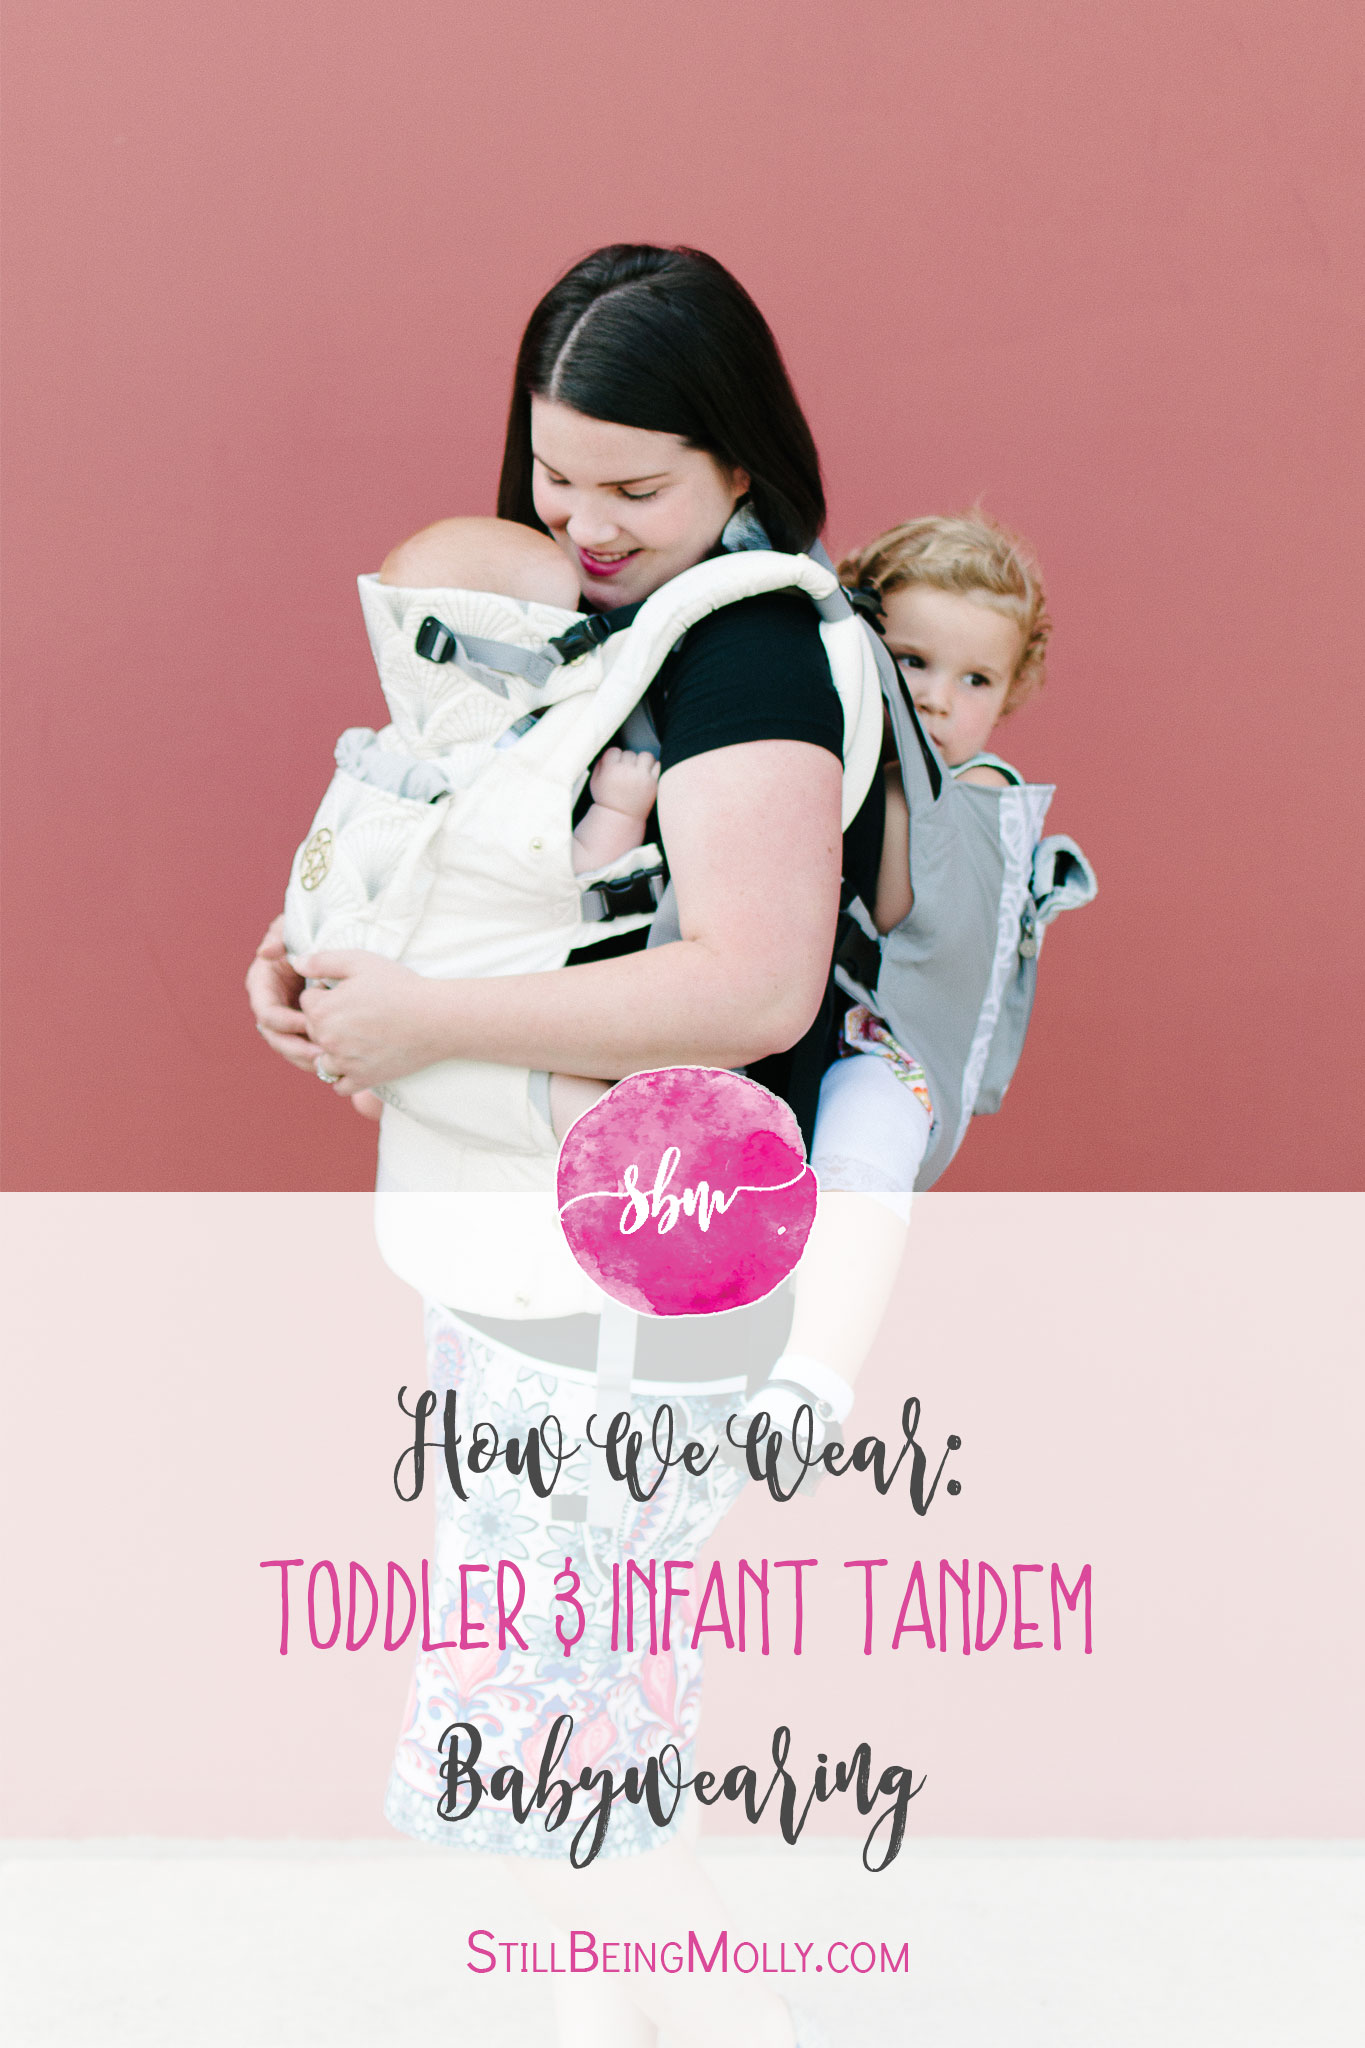 with Lillebaby Complete & CarryOn Baby Carriers #babywearing #tandemwearing #toddlerwearing (1)